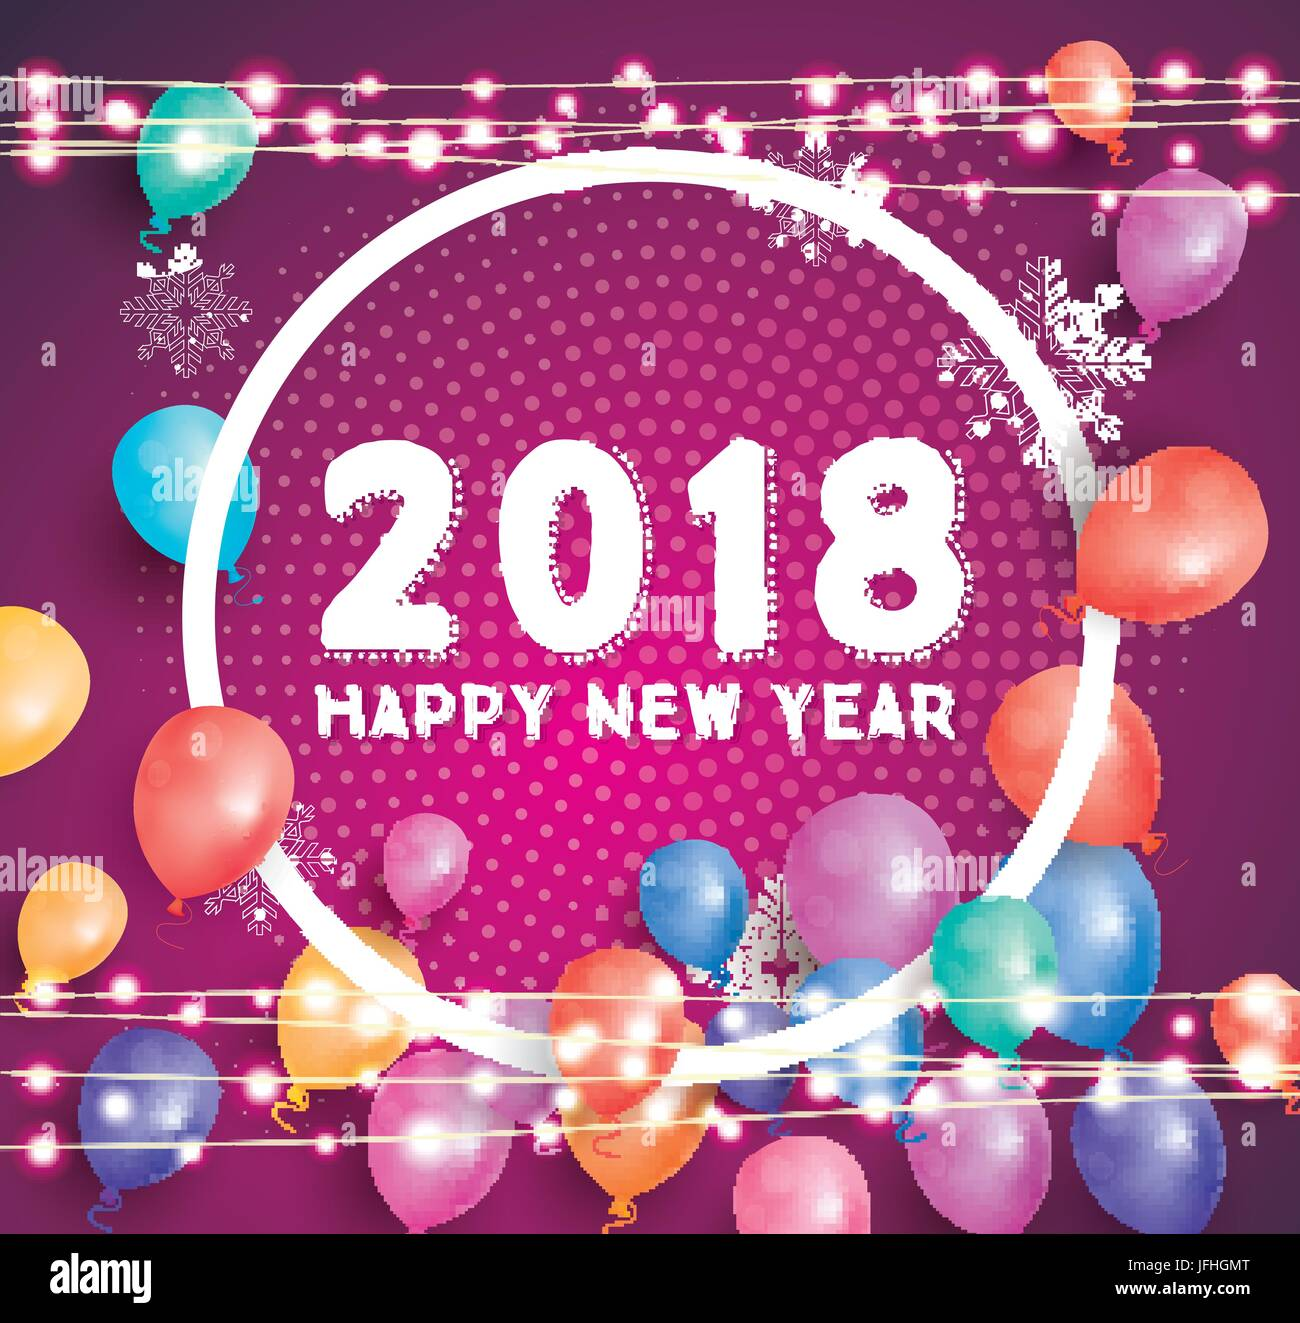 Happy New Year 2018 Greeting Card With Flying Balloons White Frame